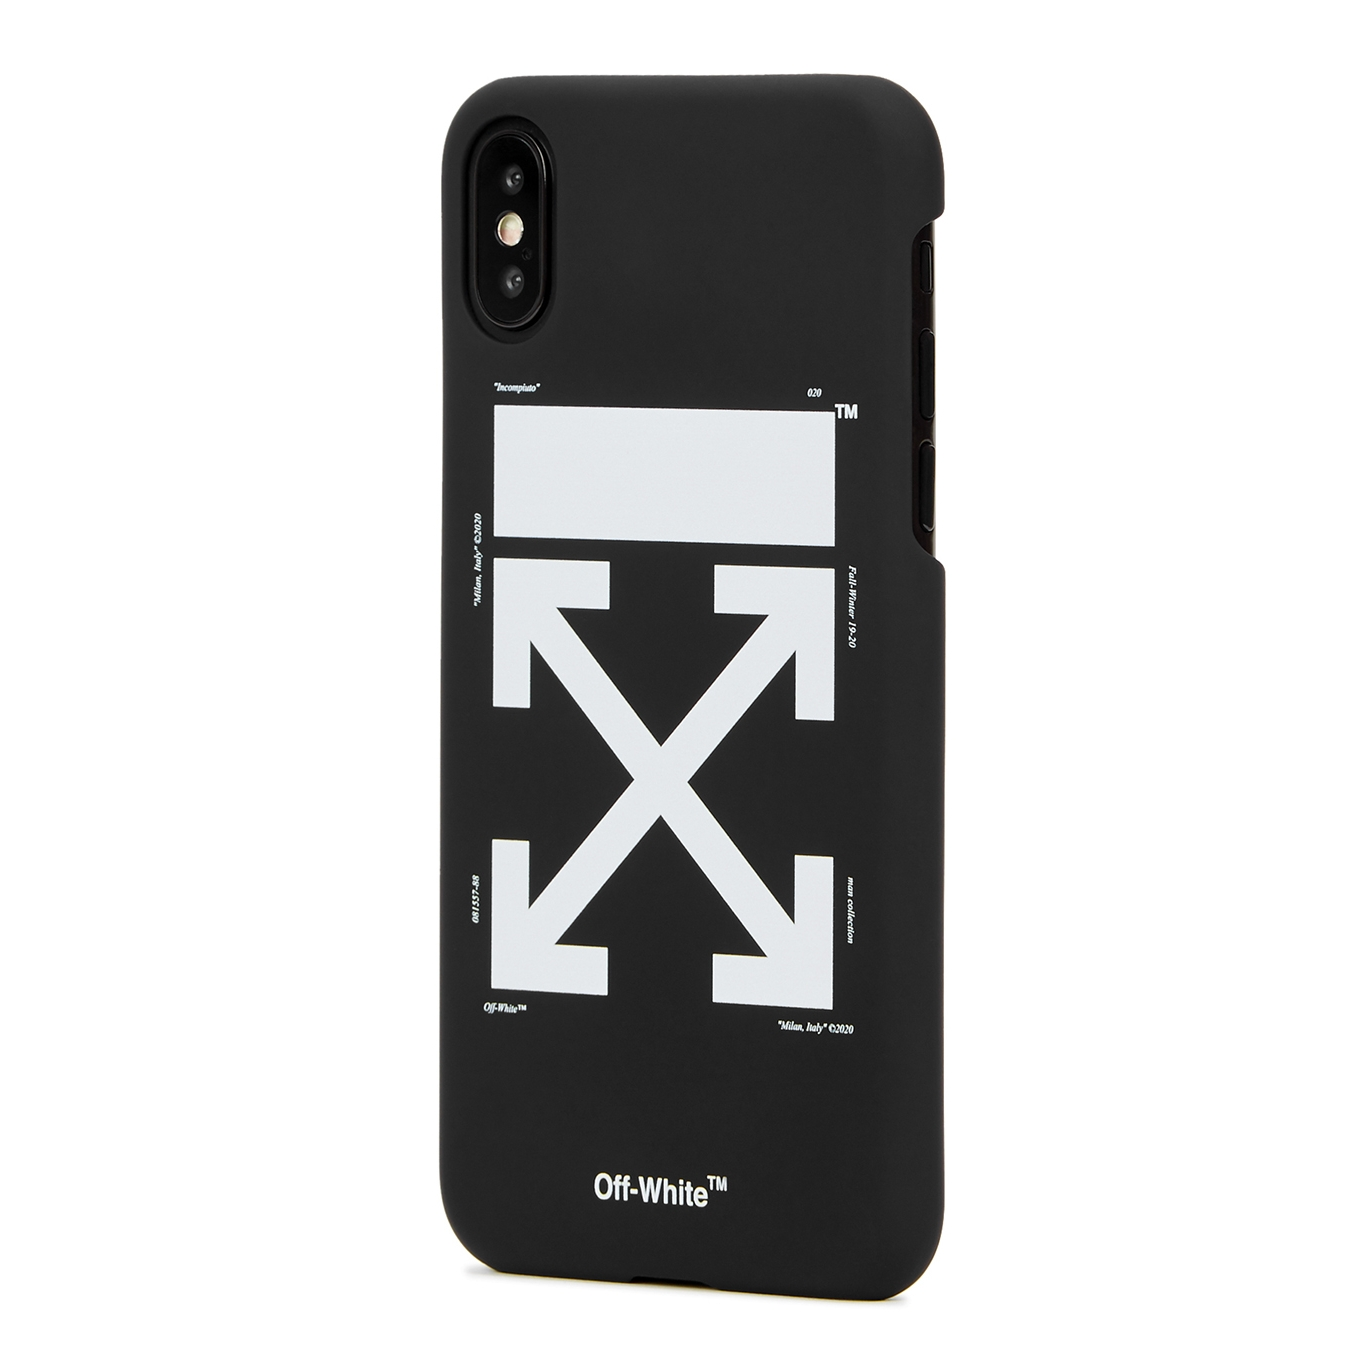 low priced a8bee 32484 Arrows matte black iPhone X case